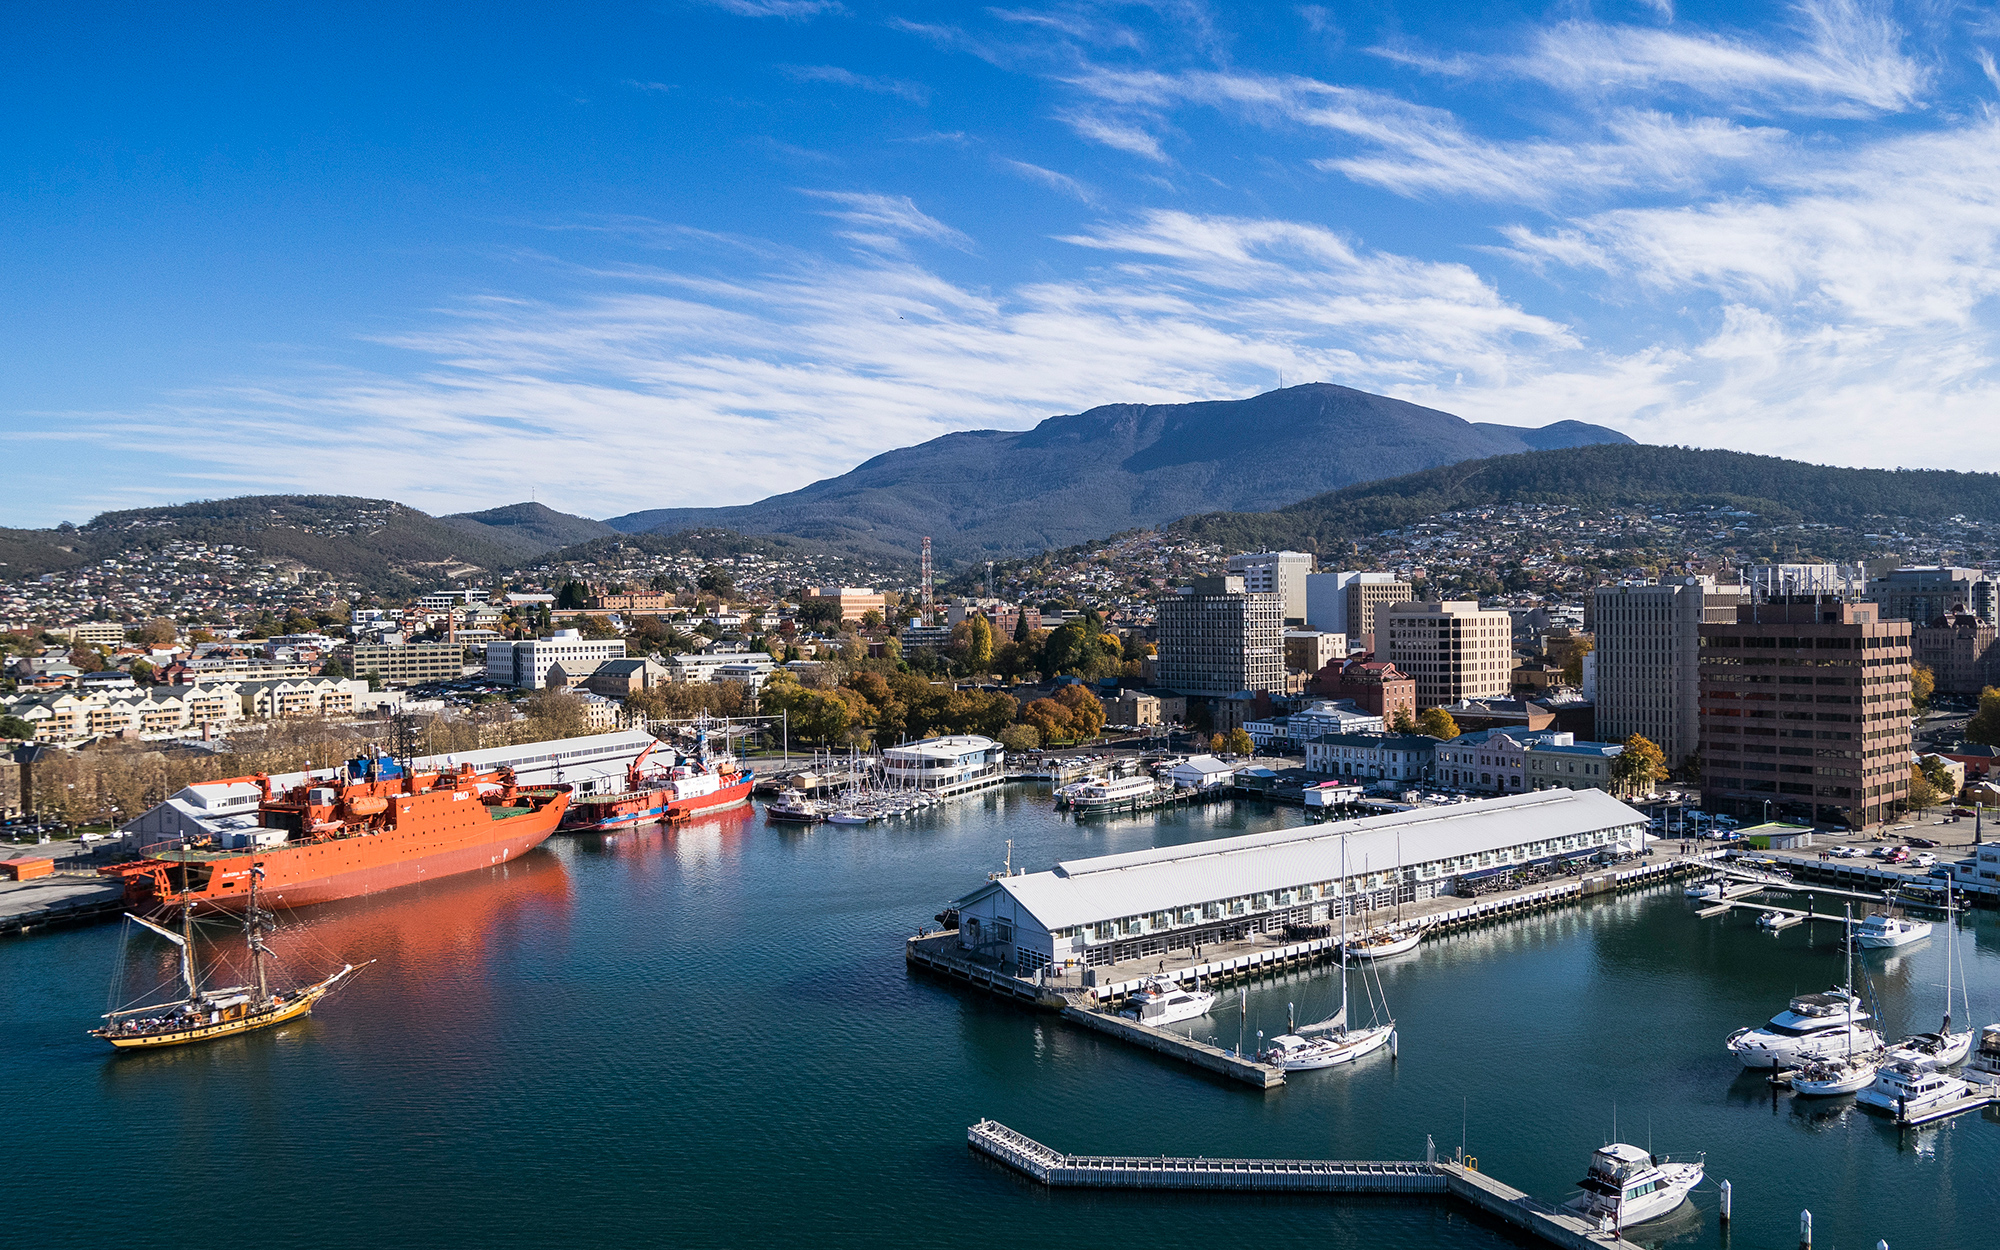 Hobart is Tasmania's capital city and the second oldest capital in Australia, after Sydney. Located at the entrance to the Derwent River, its well-preserved surrounding bushland reaches close to the city centre while beaches line the shores of the river a